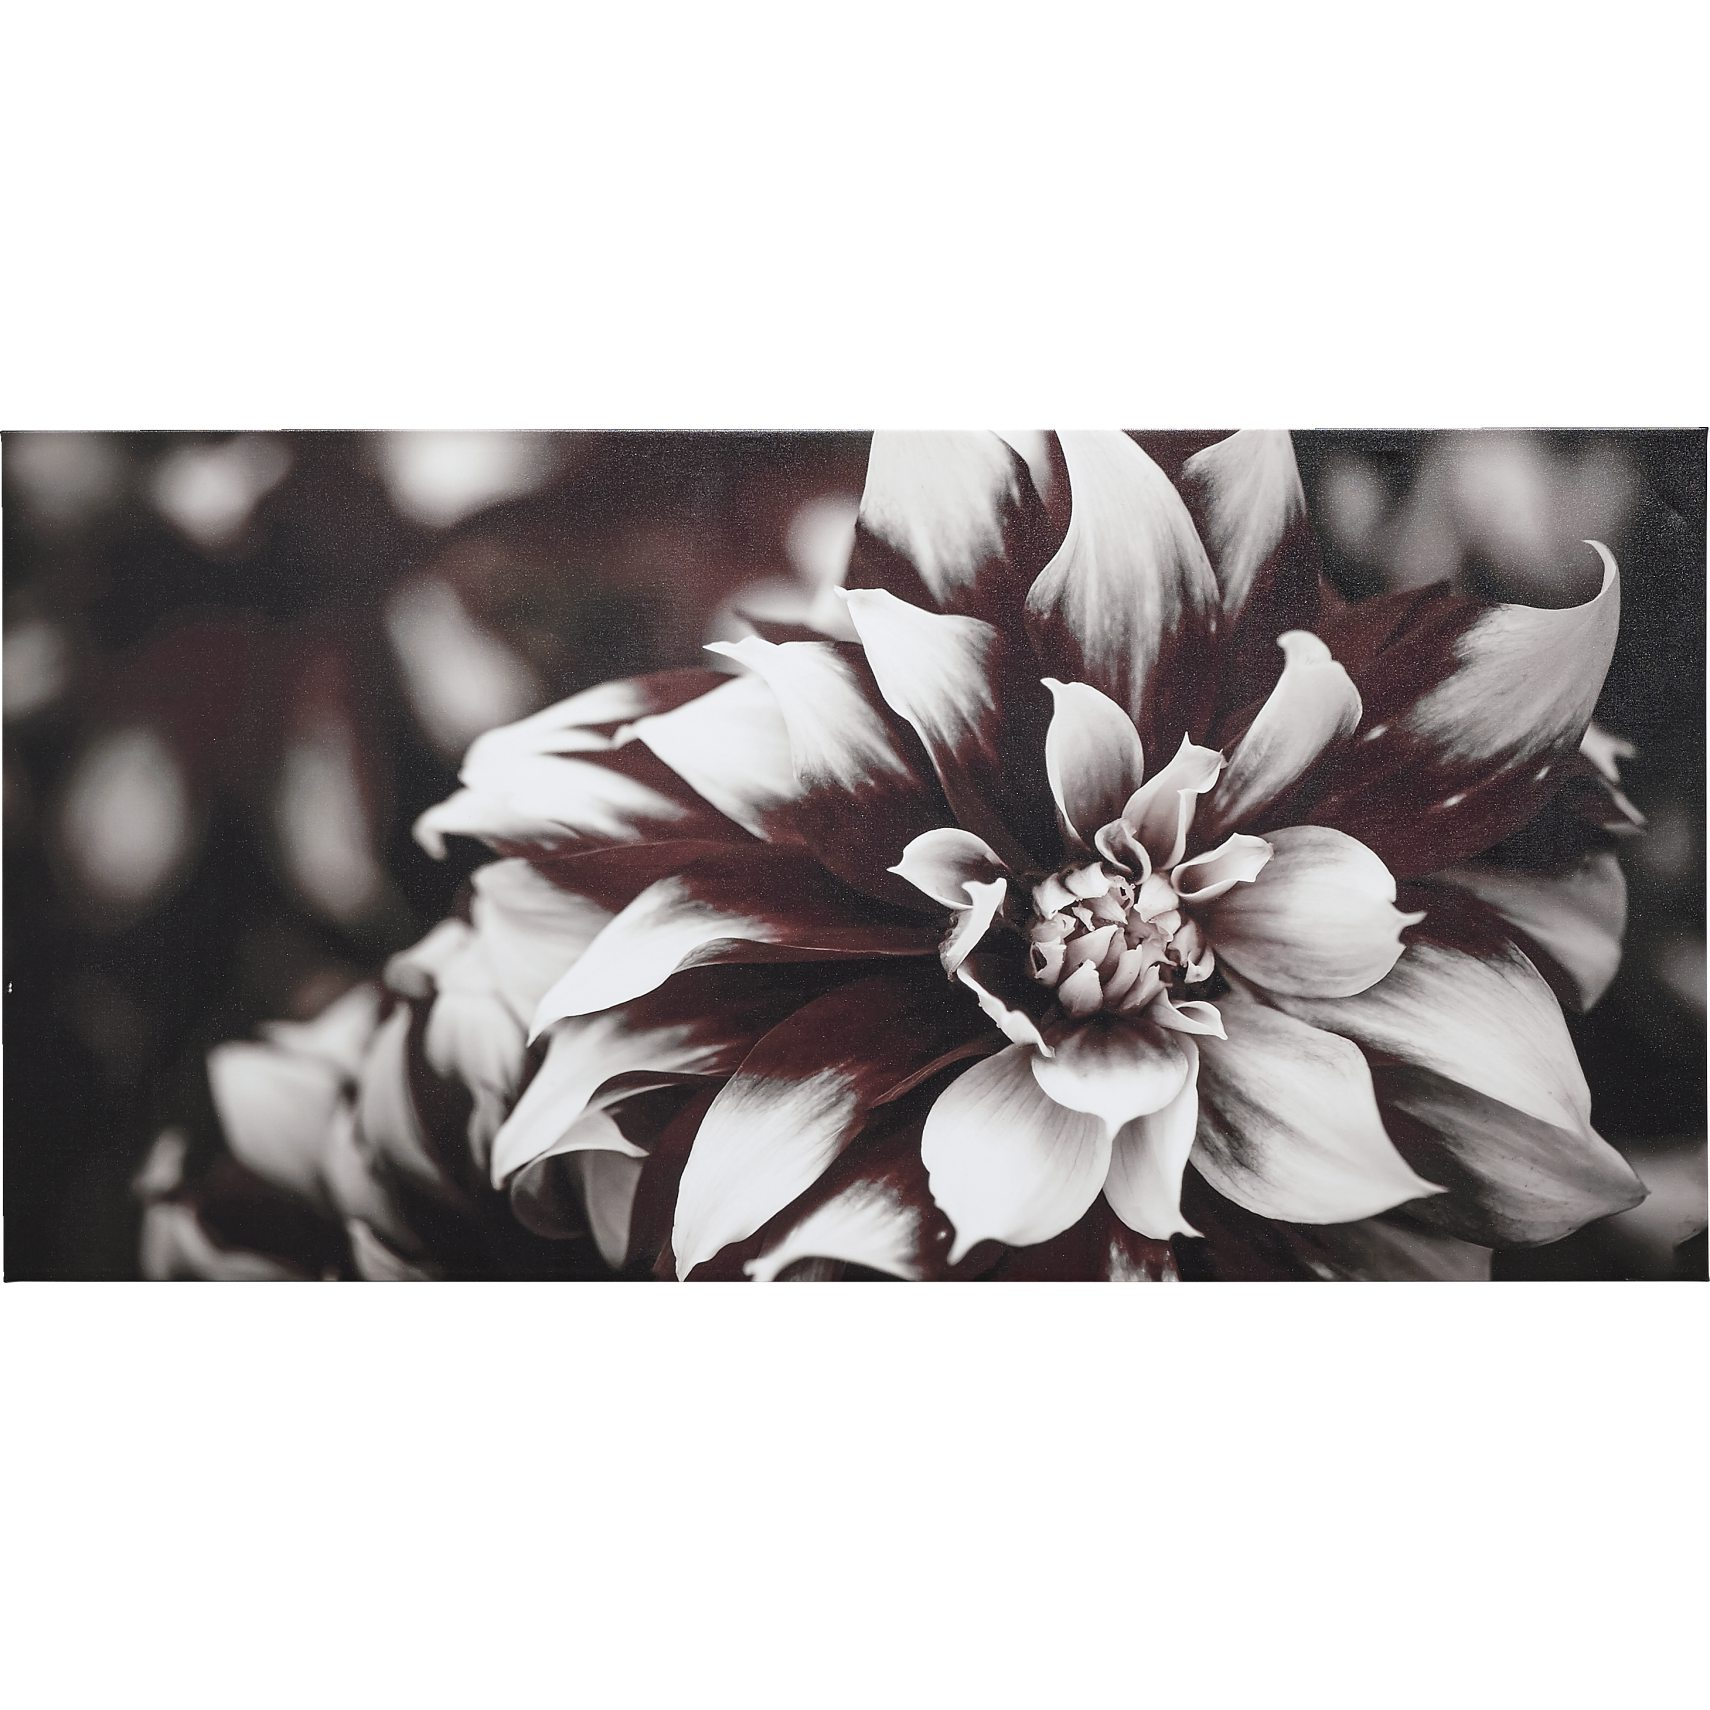 Dark Flower Fotoprint 140 x 70 x 3,5 cm -